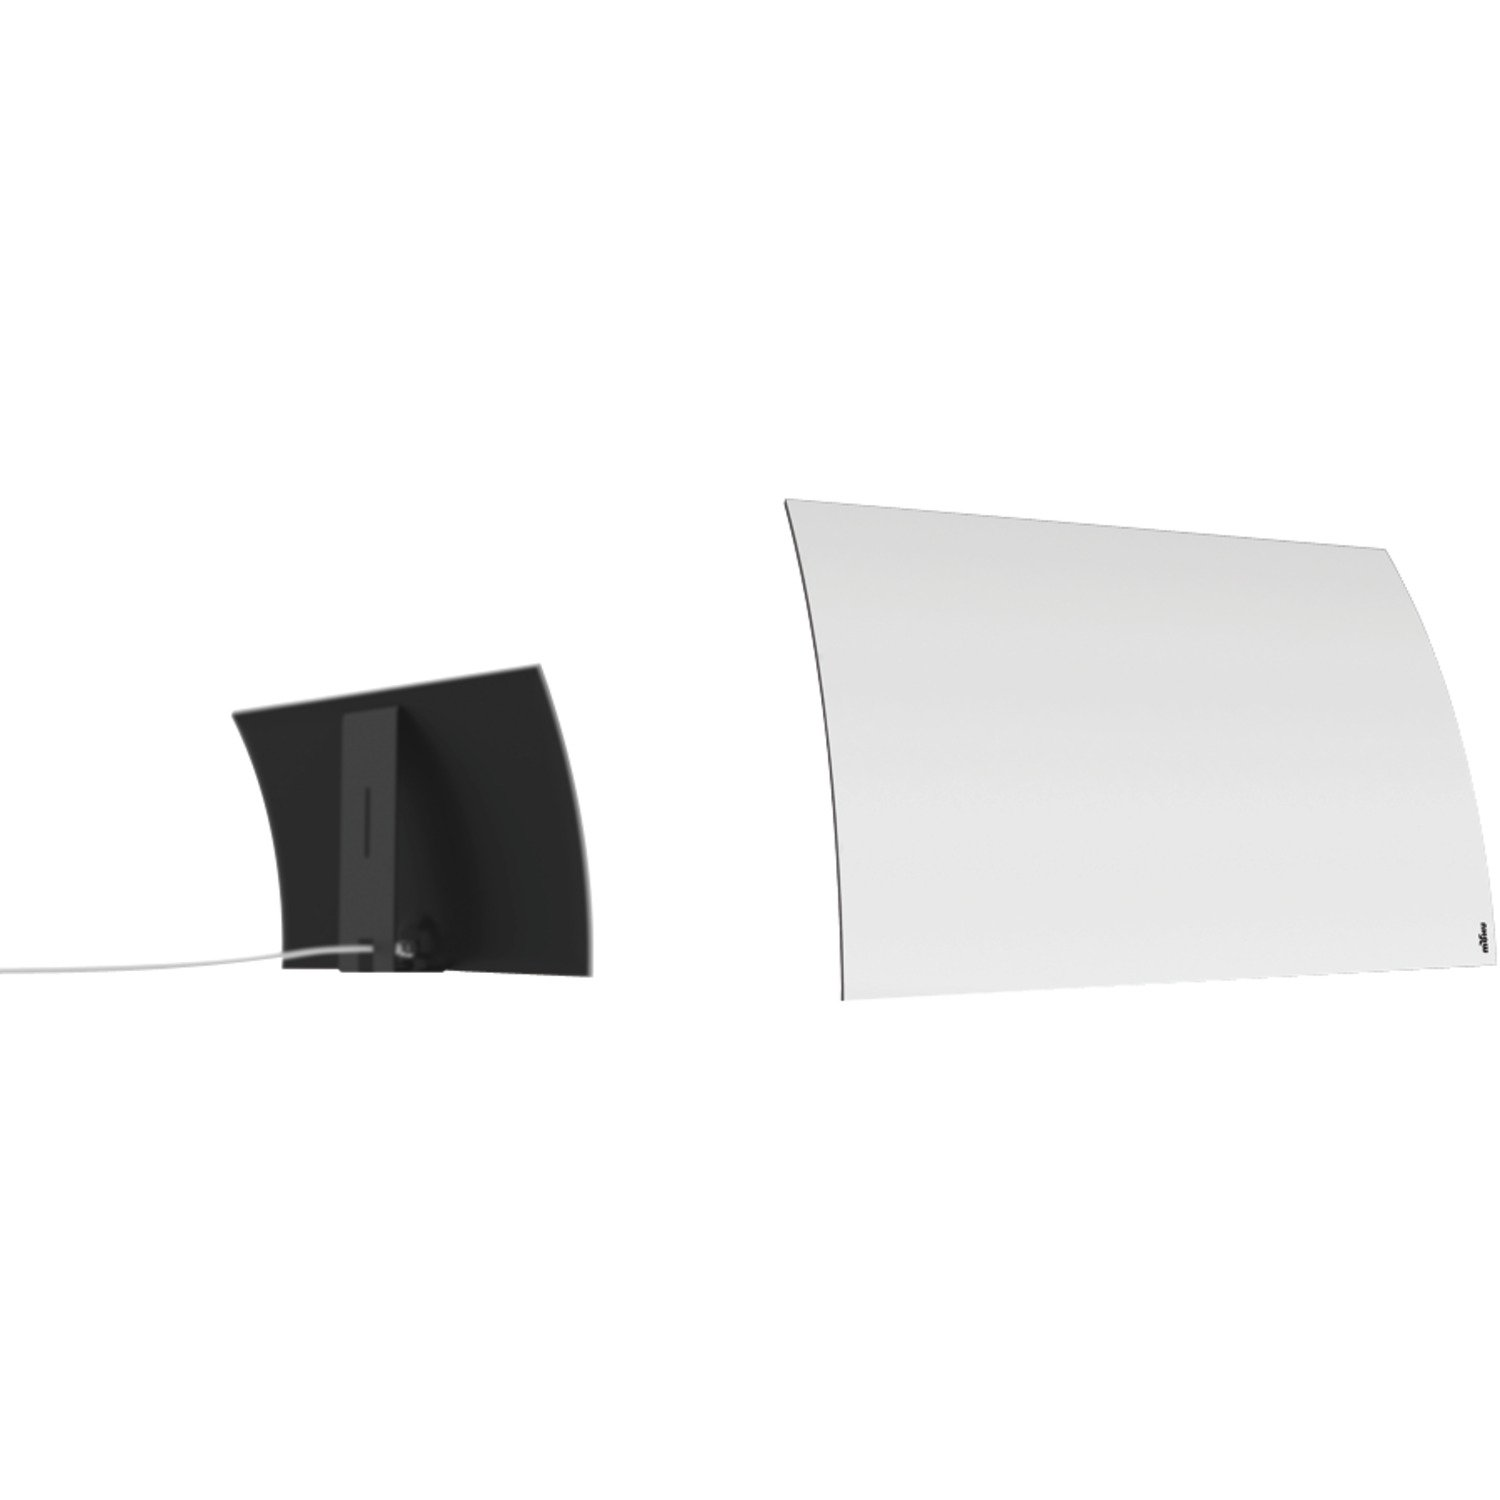 Mohu Curve 50 TV Antenna Indoor Amplified 60 Mile Range Modern Design 4K-Ready HDTV Premium Materials for Performance by Mohu